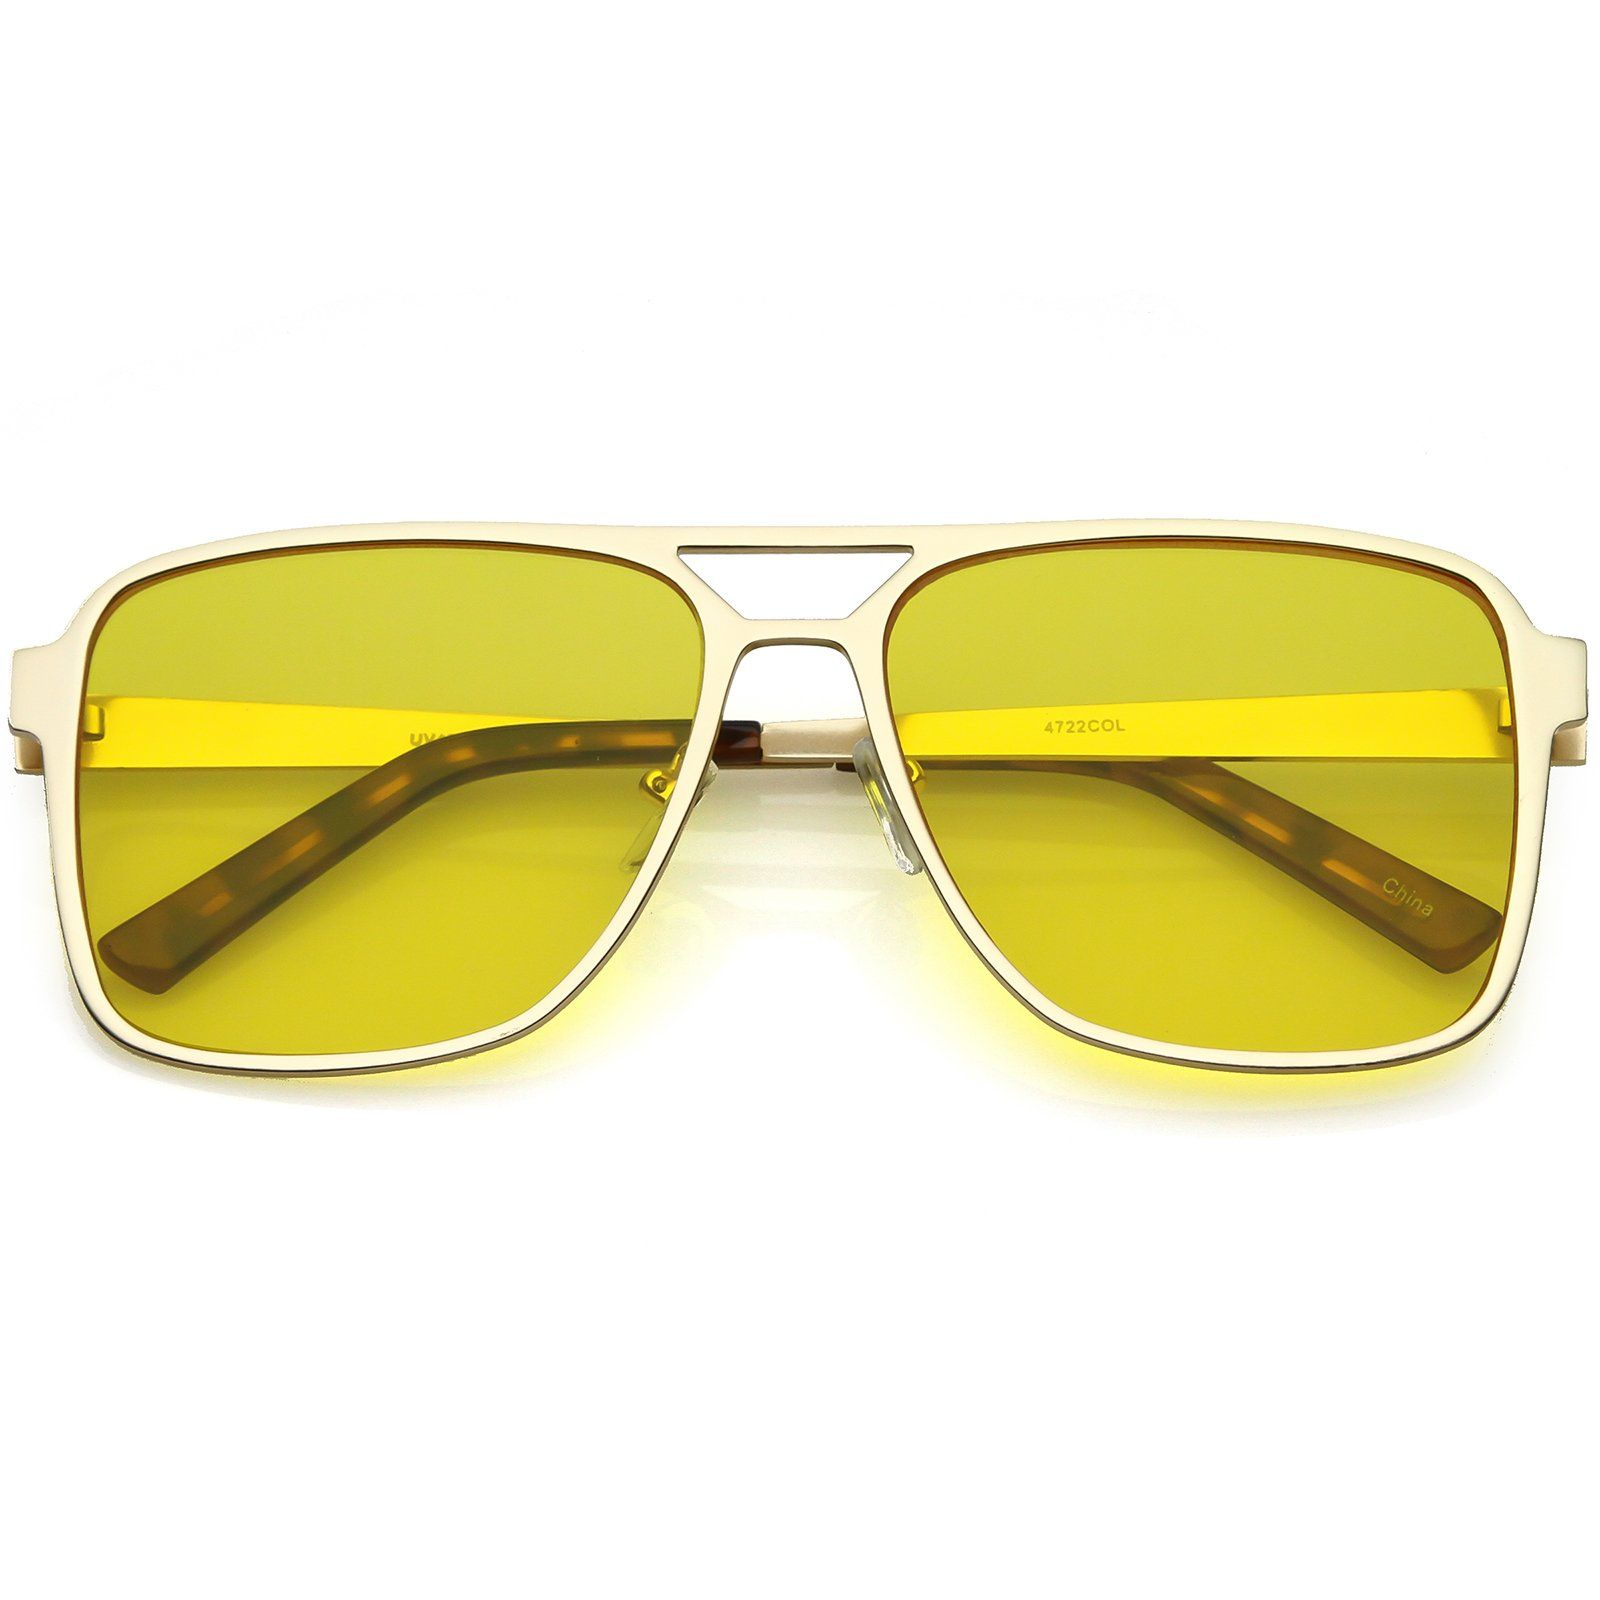 4458dbb7b Oversize Flat Top Aviator Sunglasses Color Tinted Square Flat Lens 58mm # oversized #sunglass #frame #sunglasses #clear #summer #mirrored #womens  #cateye # ...